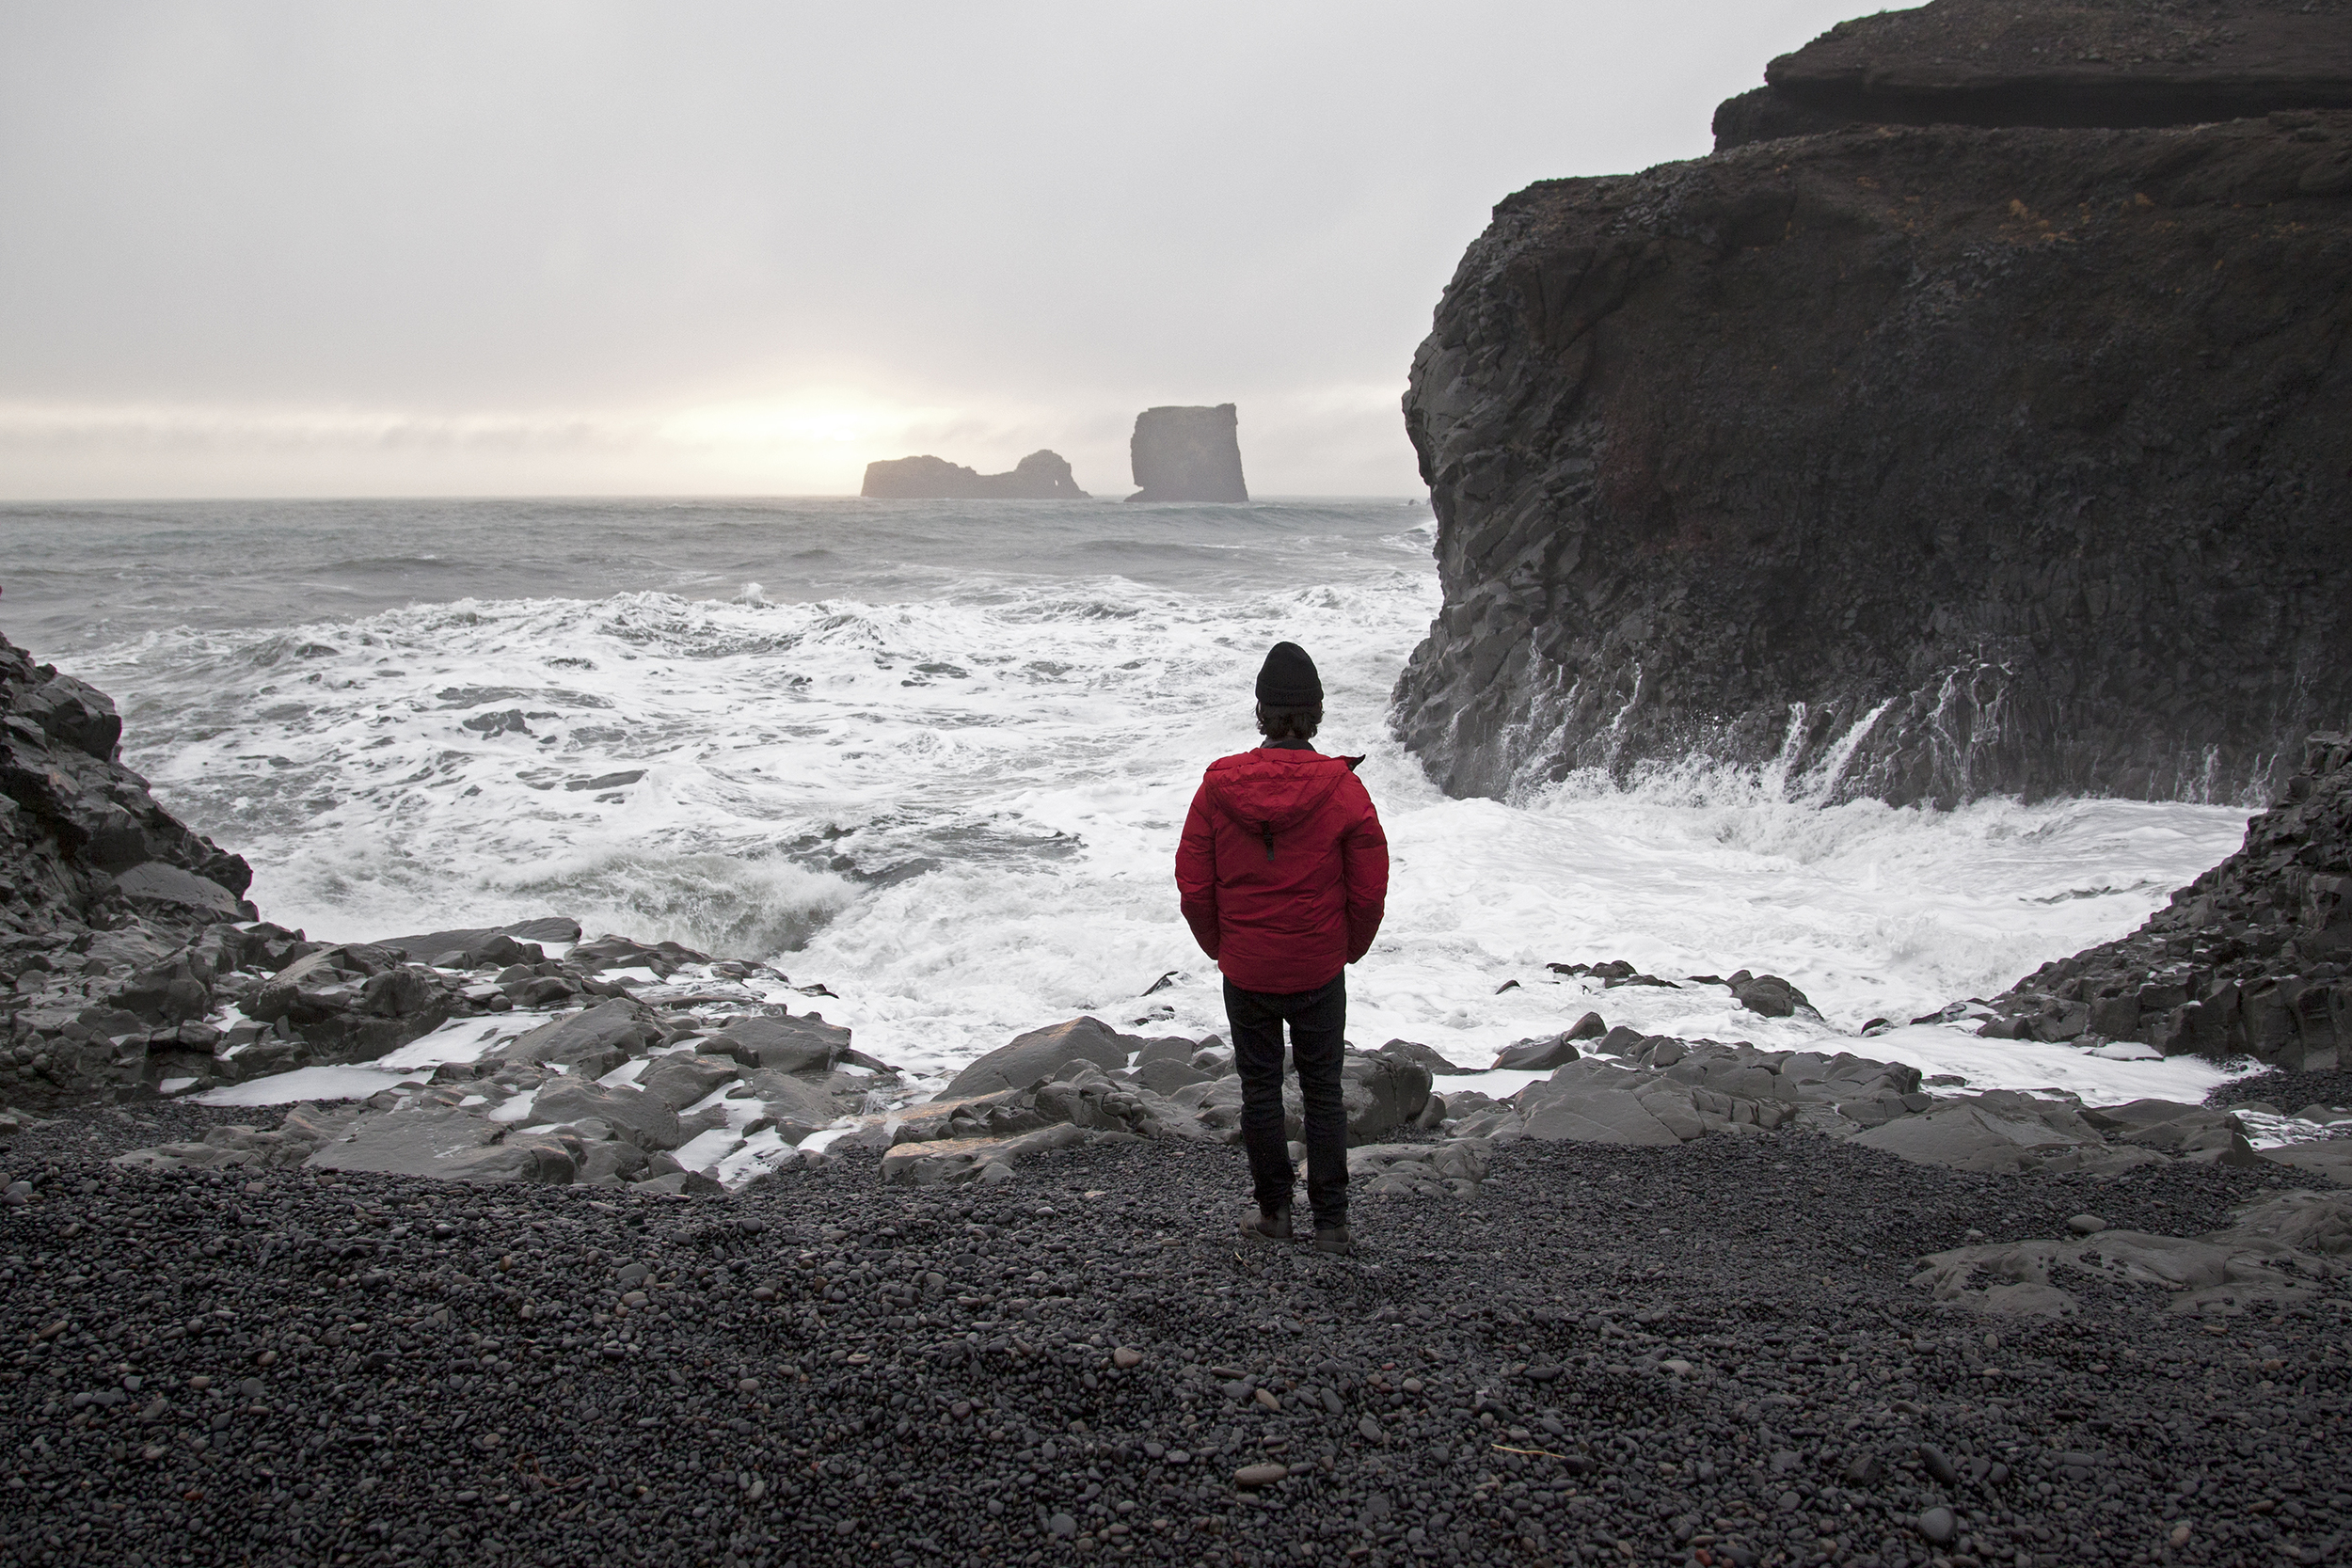 This shot was taken by another artist @juliepasila as the sun was setting around 3:30pm. Four other artists and I decided to take a road trip to the south of Iceland and we found this really unique spot where the water was crashing against the rocks. Most of those rocks I'm standing on are amazing skipping stones.